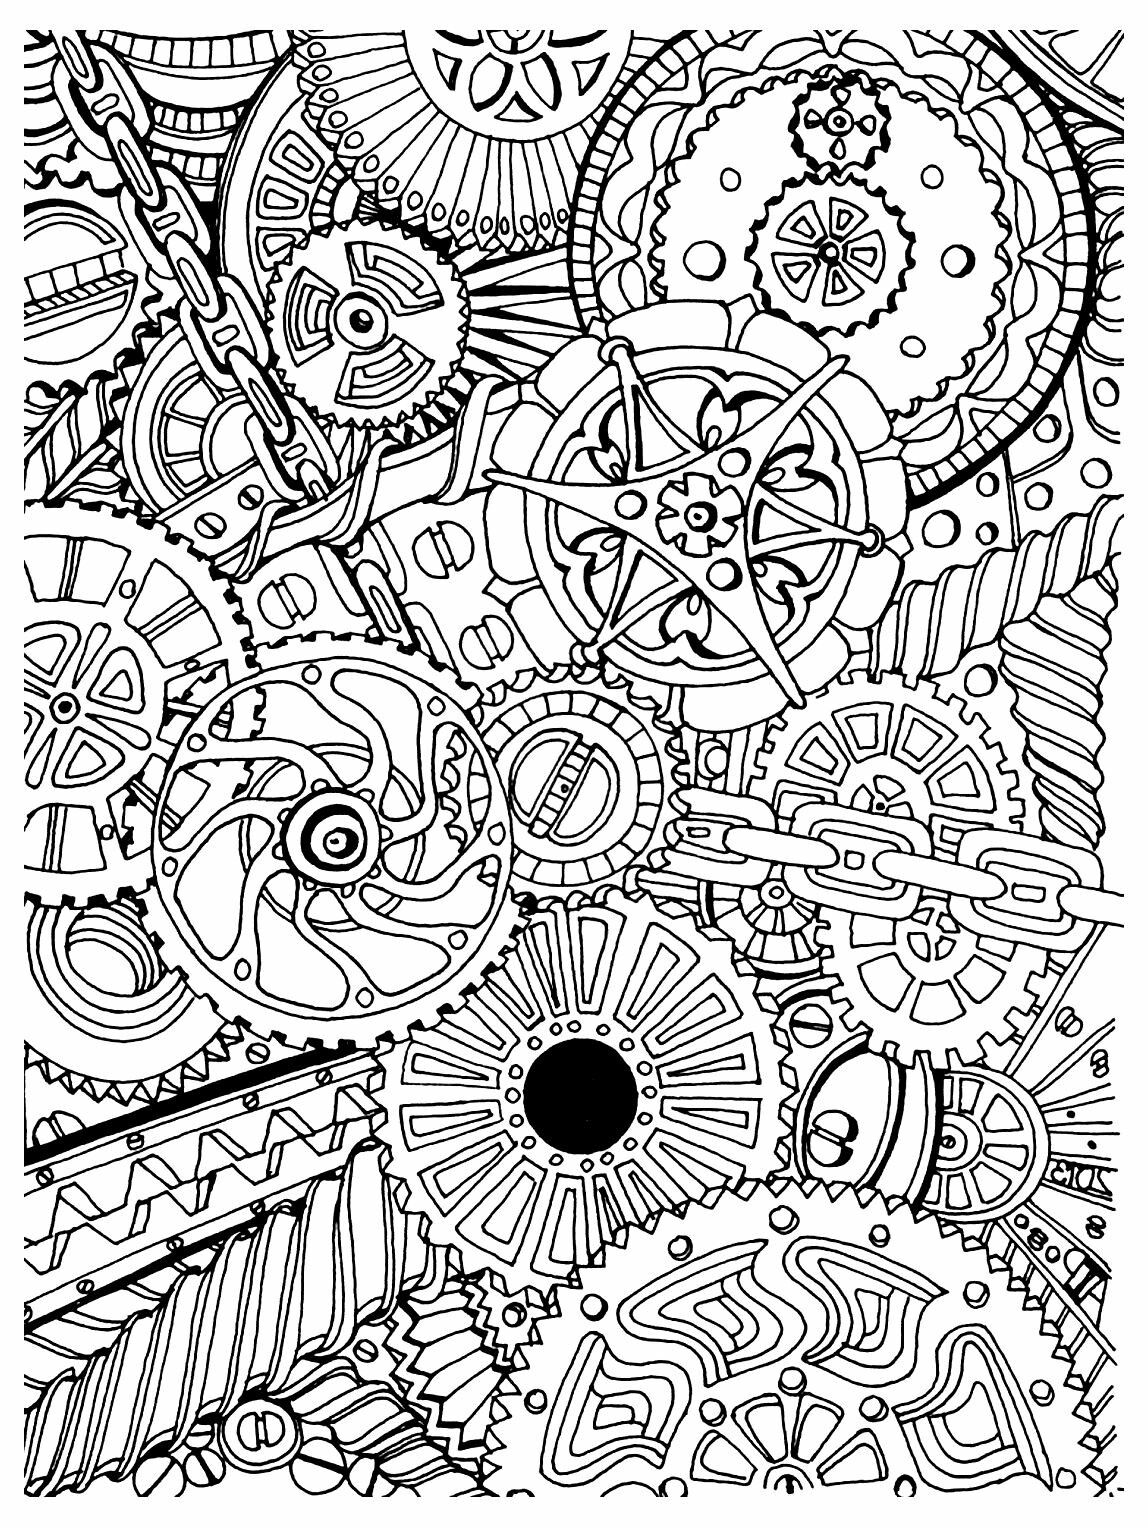 Zentangle Page Black and White Images, Sepia, and